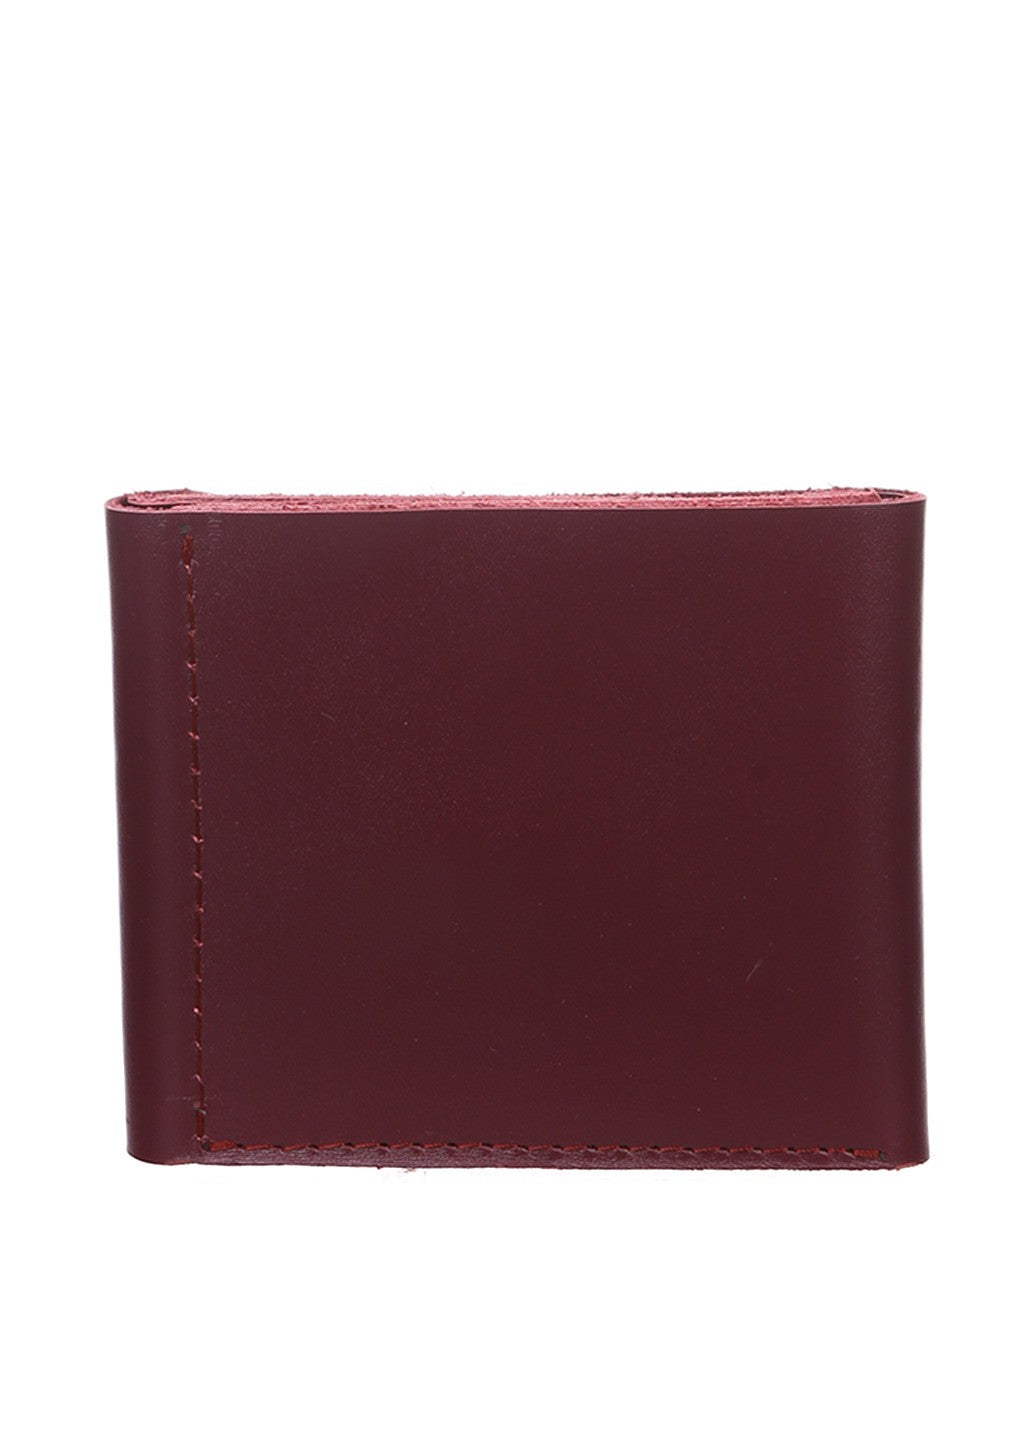 Handmade leather bifold wallet - 2